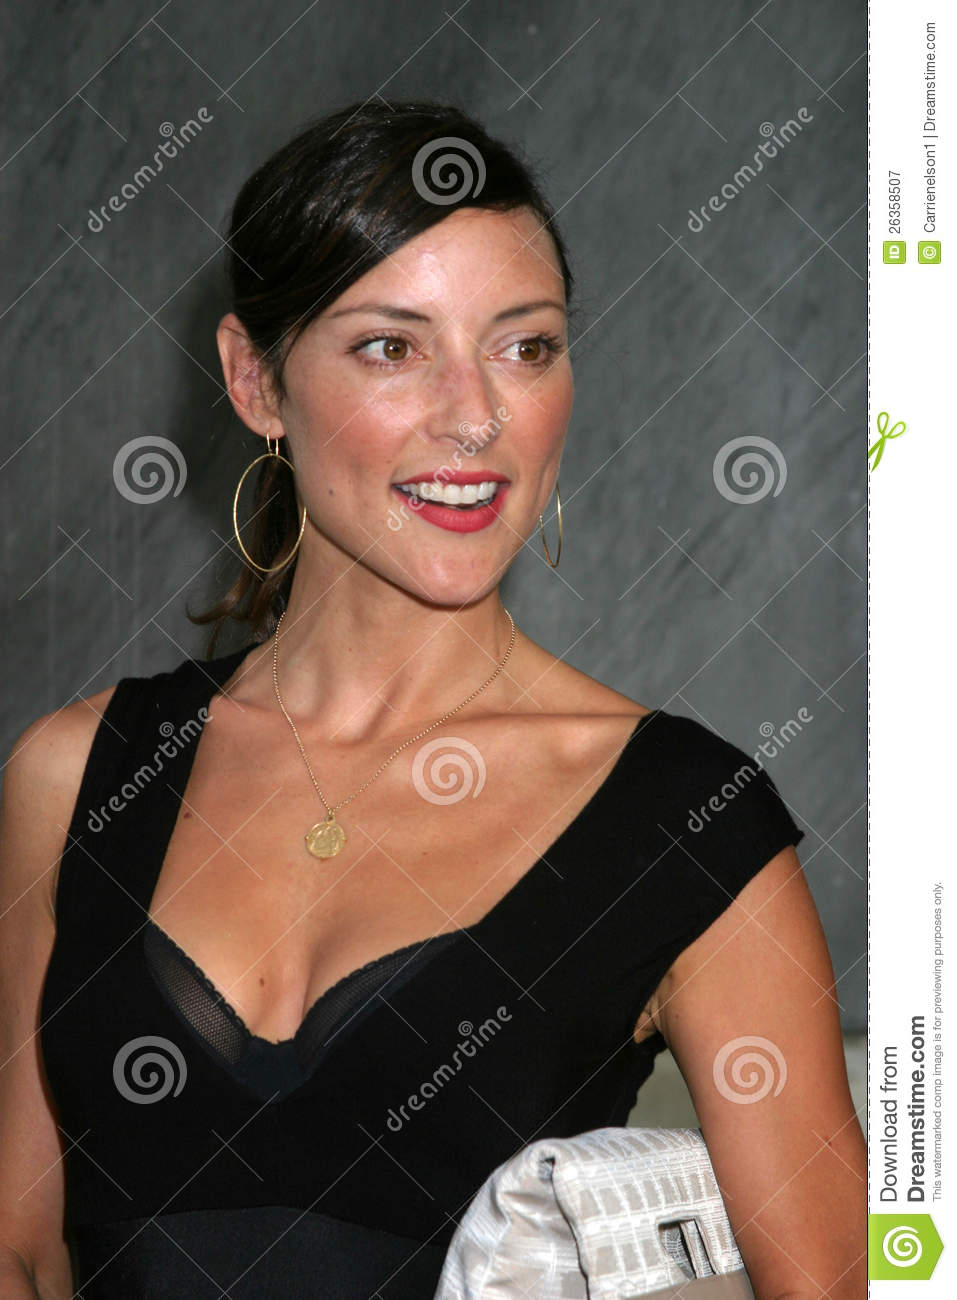 lola glaudini ncislola glaudini instagram, lola glaudini castle, lola glaudini parents, lola glaudini expance, lola glaudini film, lola glaudini wiki, lola glaudini 2016, lola glaudini ncis, lola glaudini criminal minds, lola glaudini leaves criminal minds, lola glaudini imdb, lola glaudini wikifeet, lola glaudini 2015, lola glaudini hot, lola glaudini net worth, lola glaudini commercial